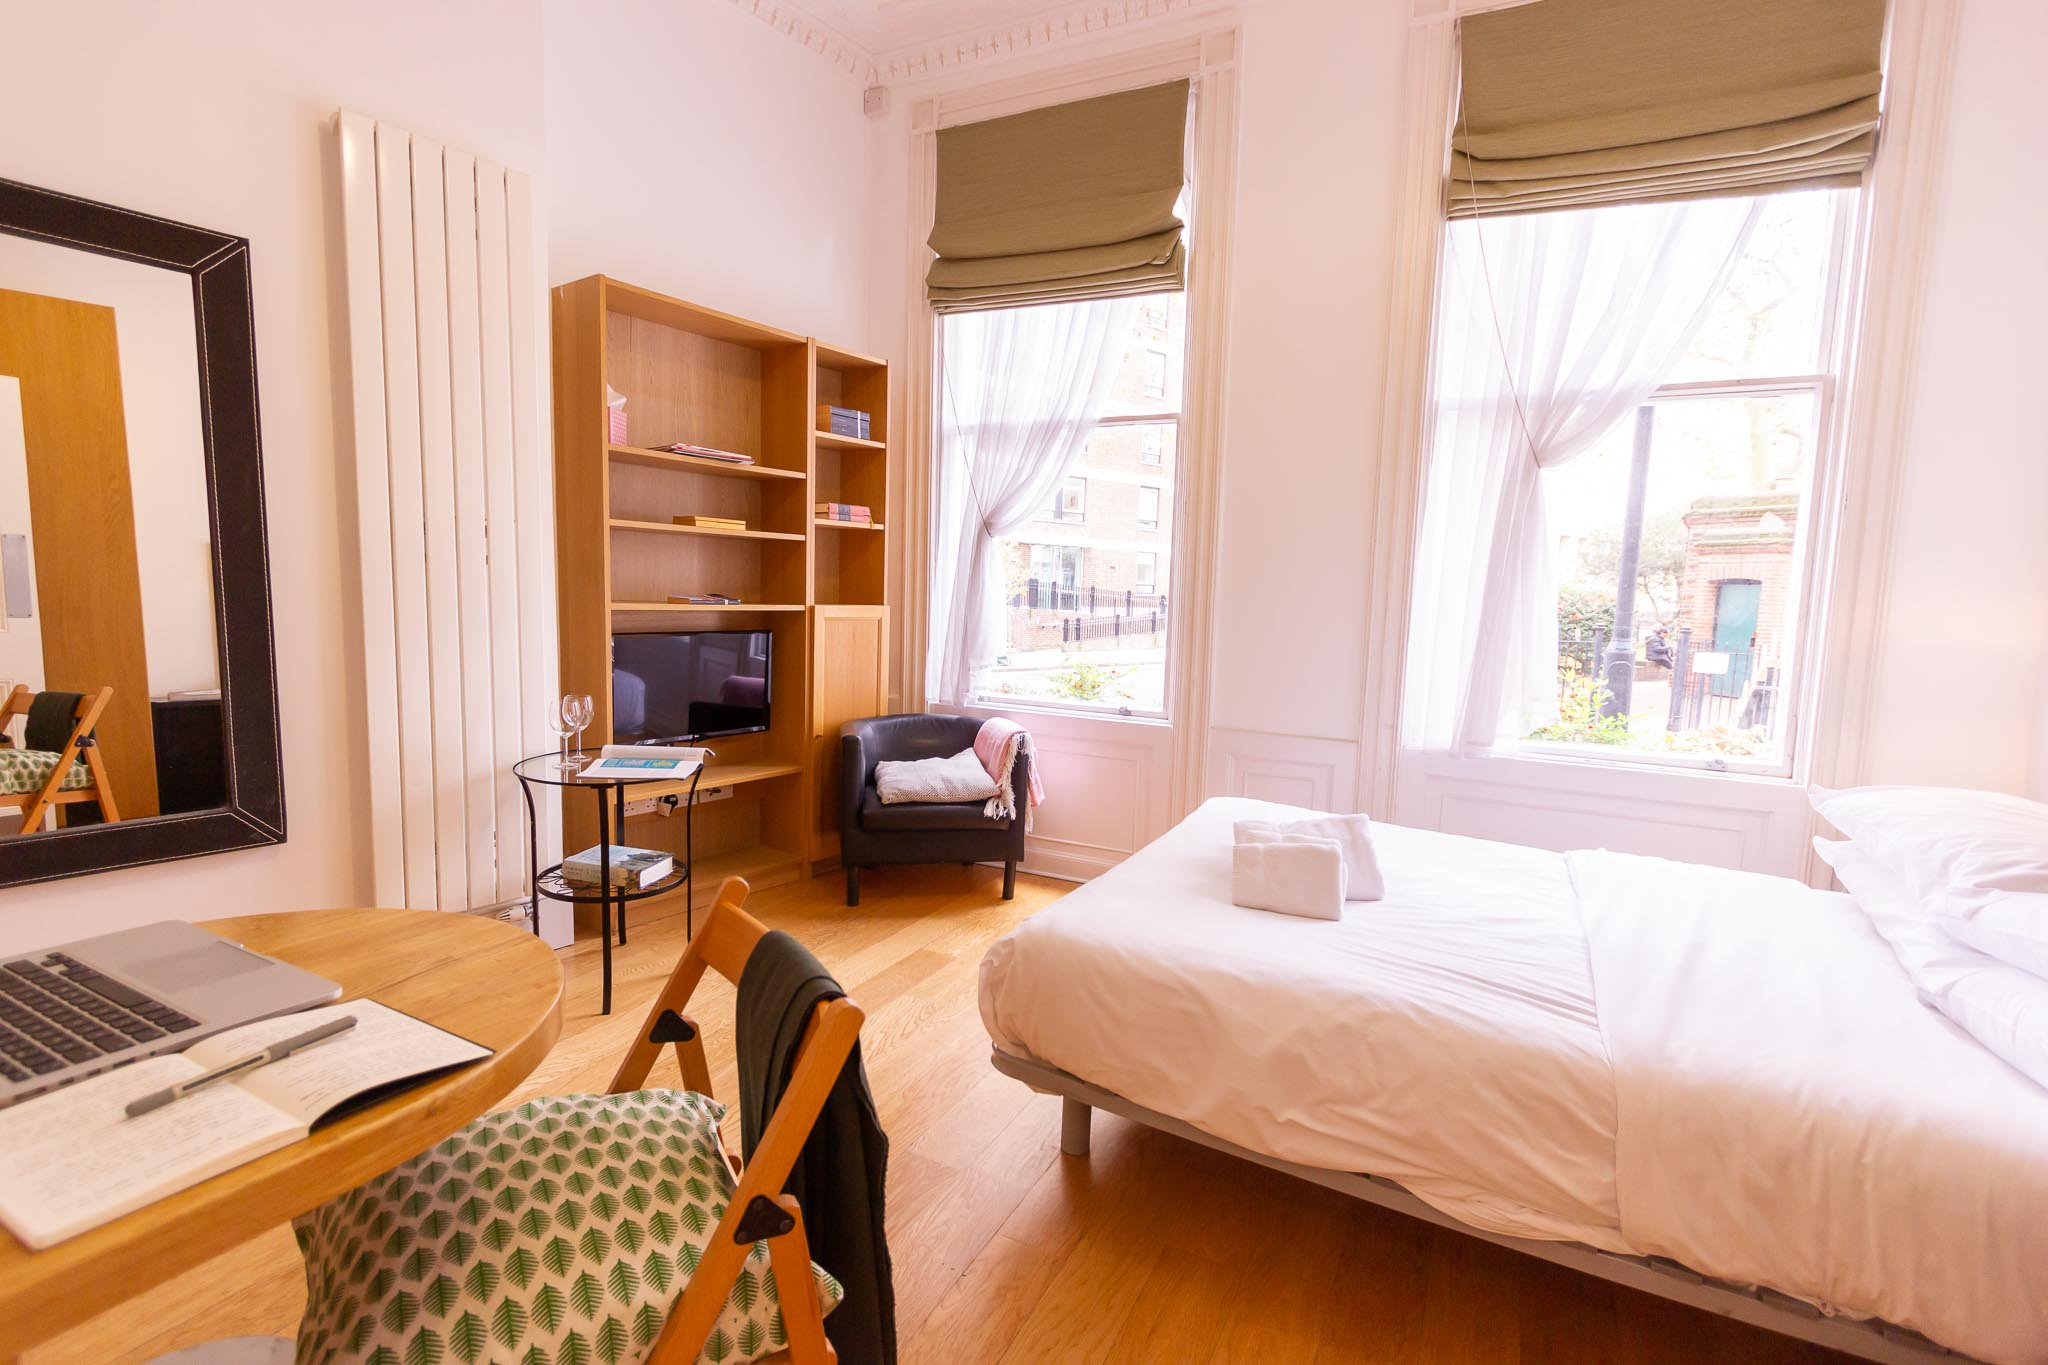 Renting in Bloomsbury - Studio Flats For Rent Central London